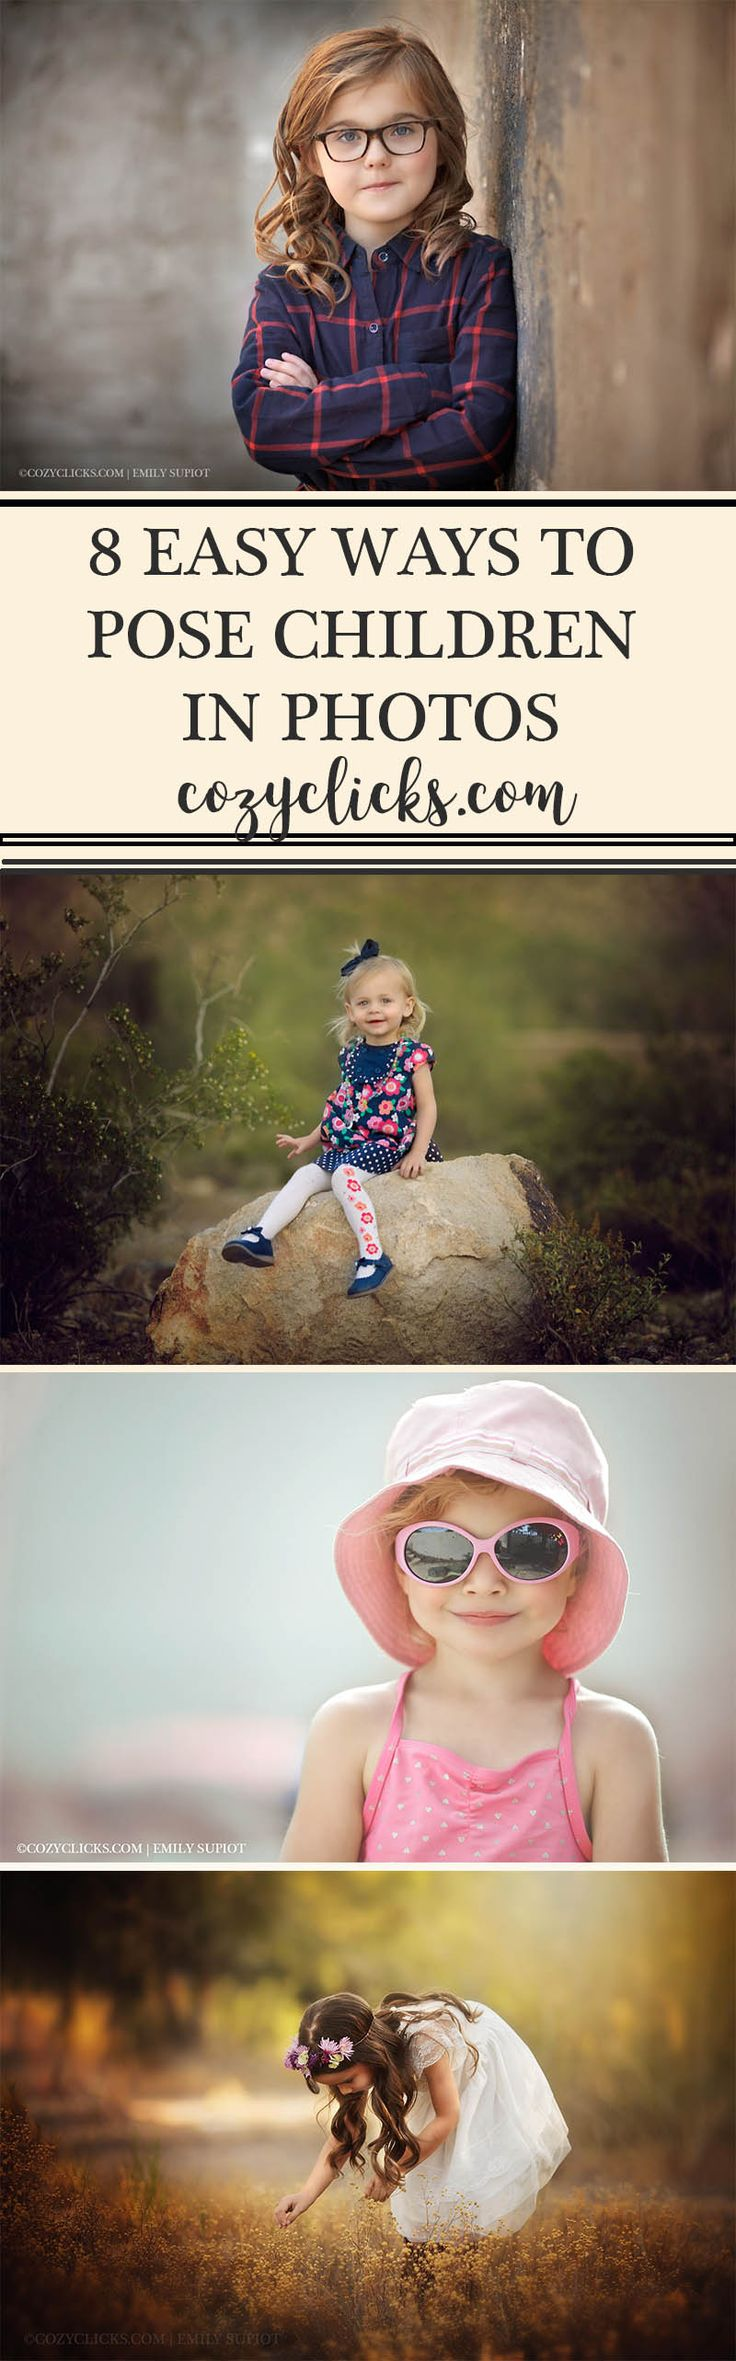 Easy poses for children in photos. Read here to see posing tips for working with kids.